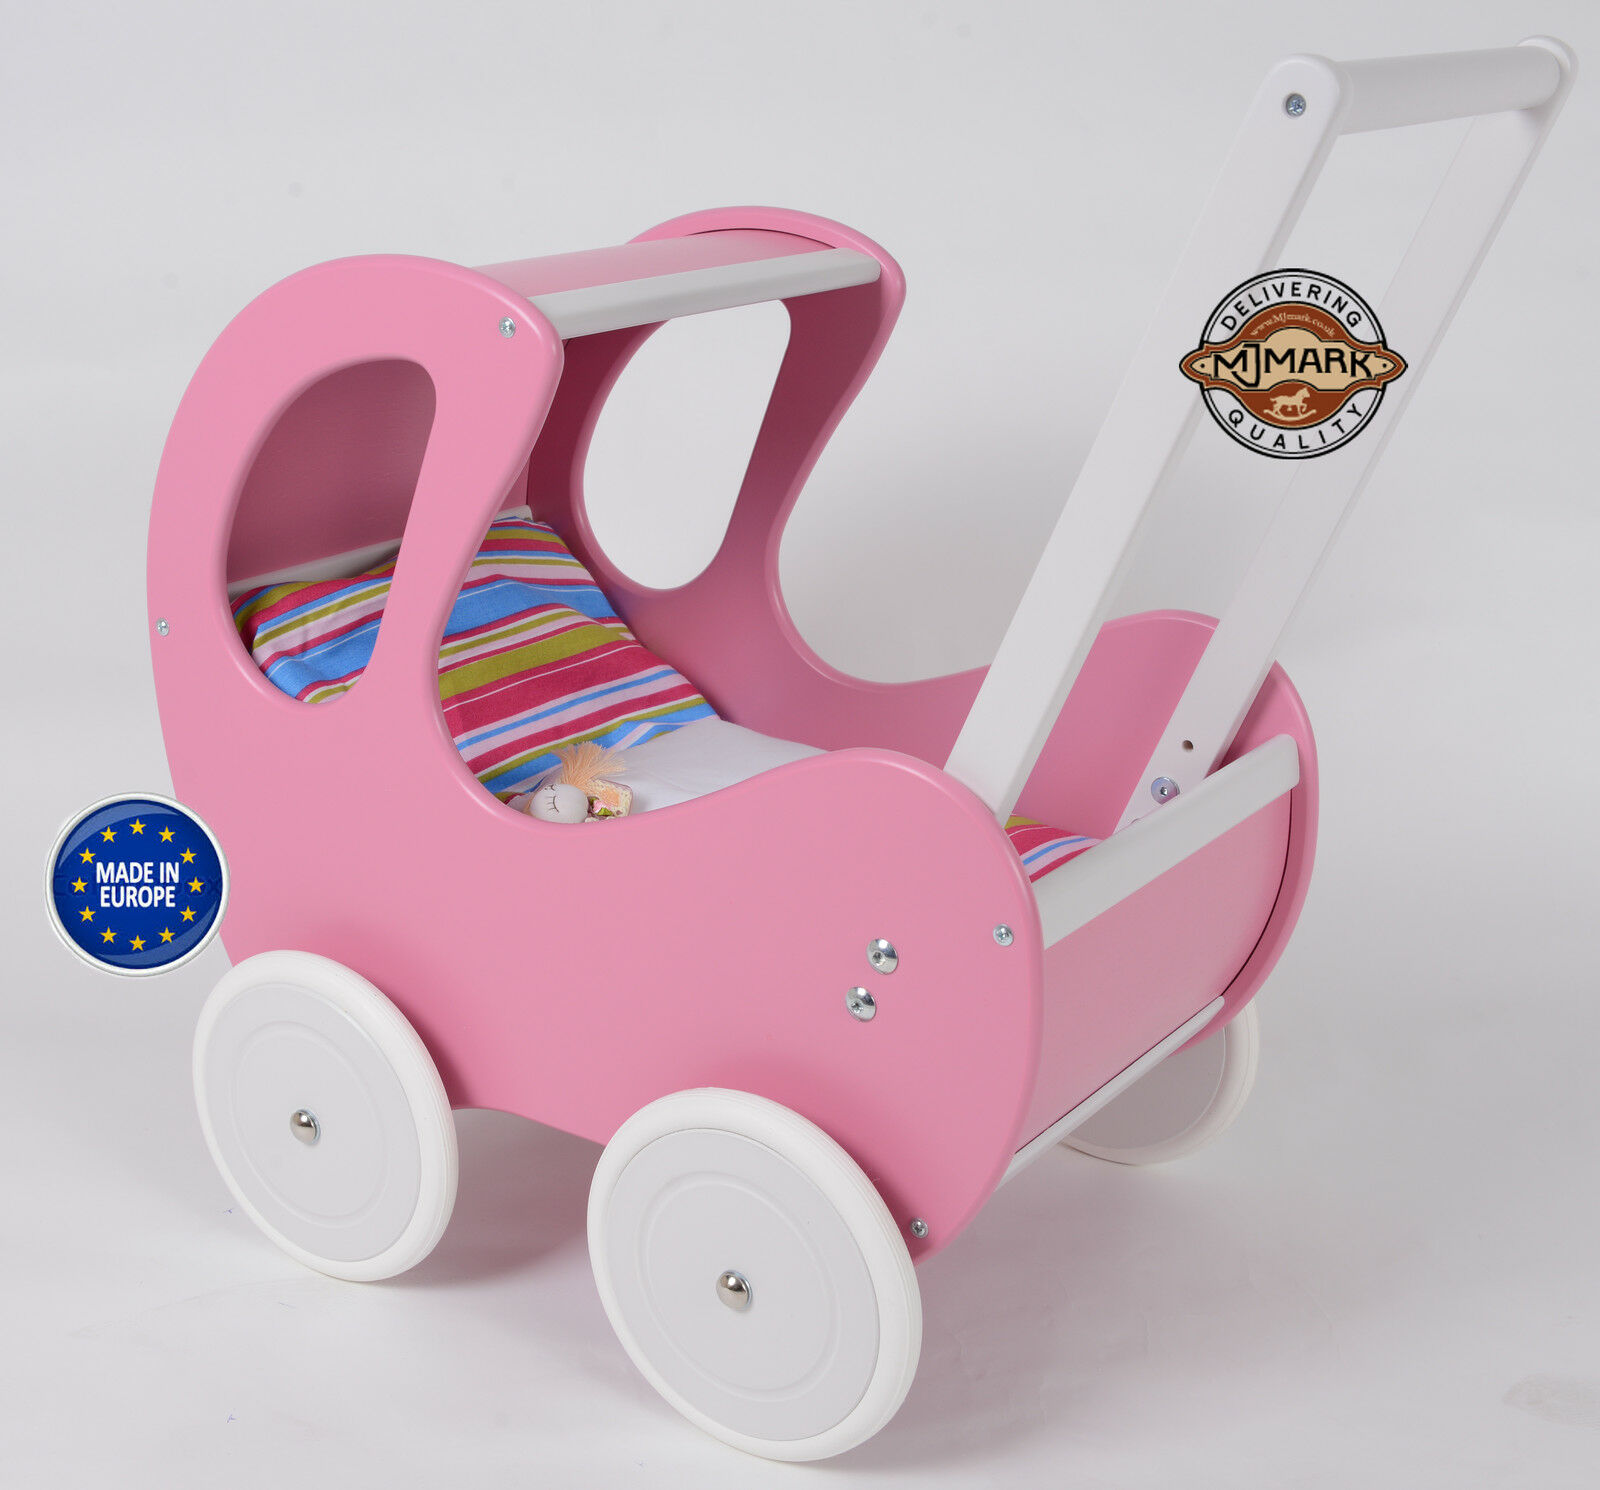 Brand New Wooden Doll Pram ZIZI III B2 including BEDDING Doll´s PRAM from MJmark